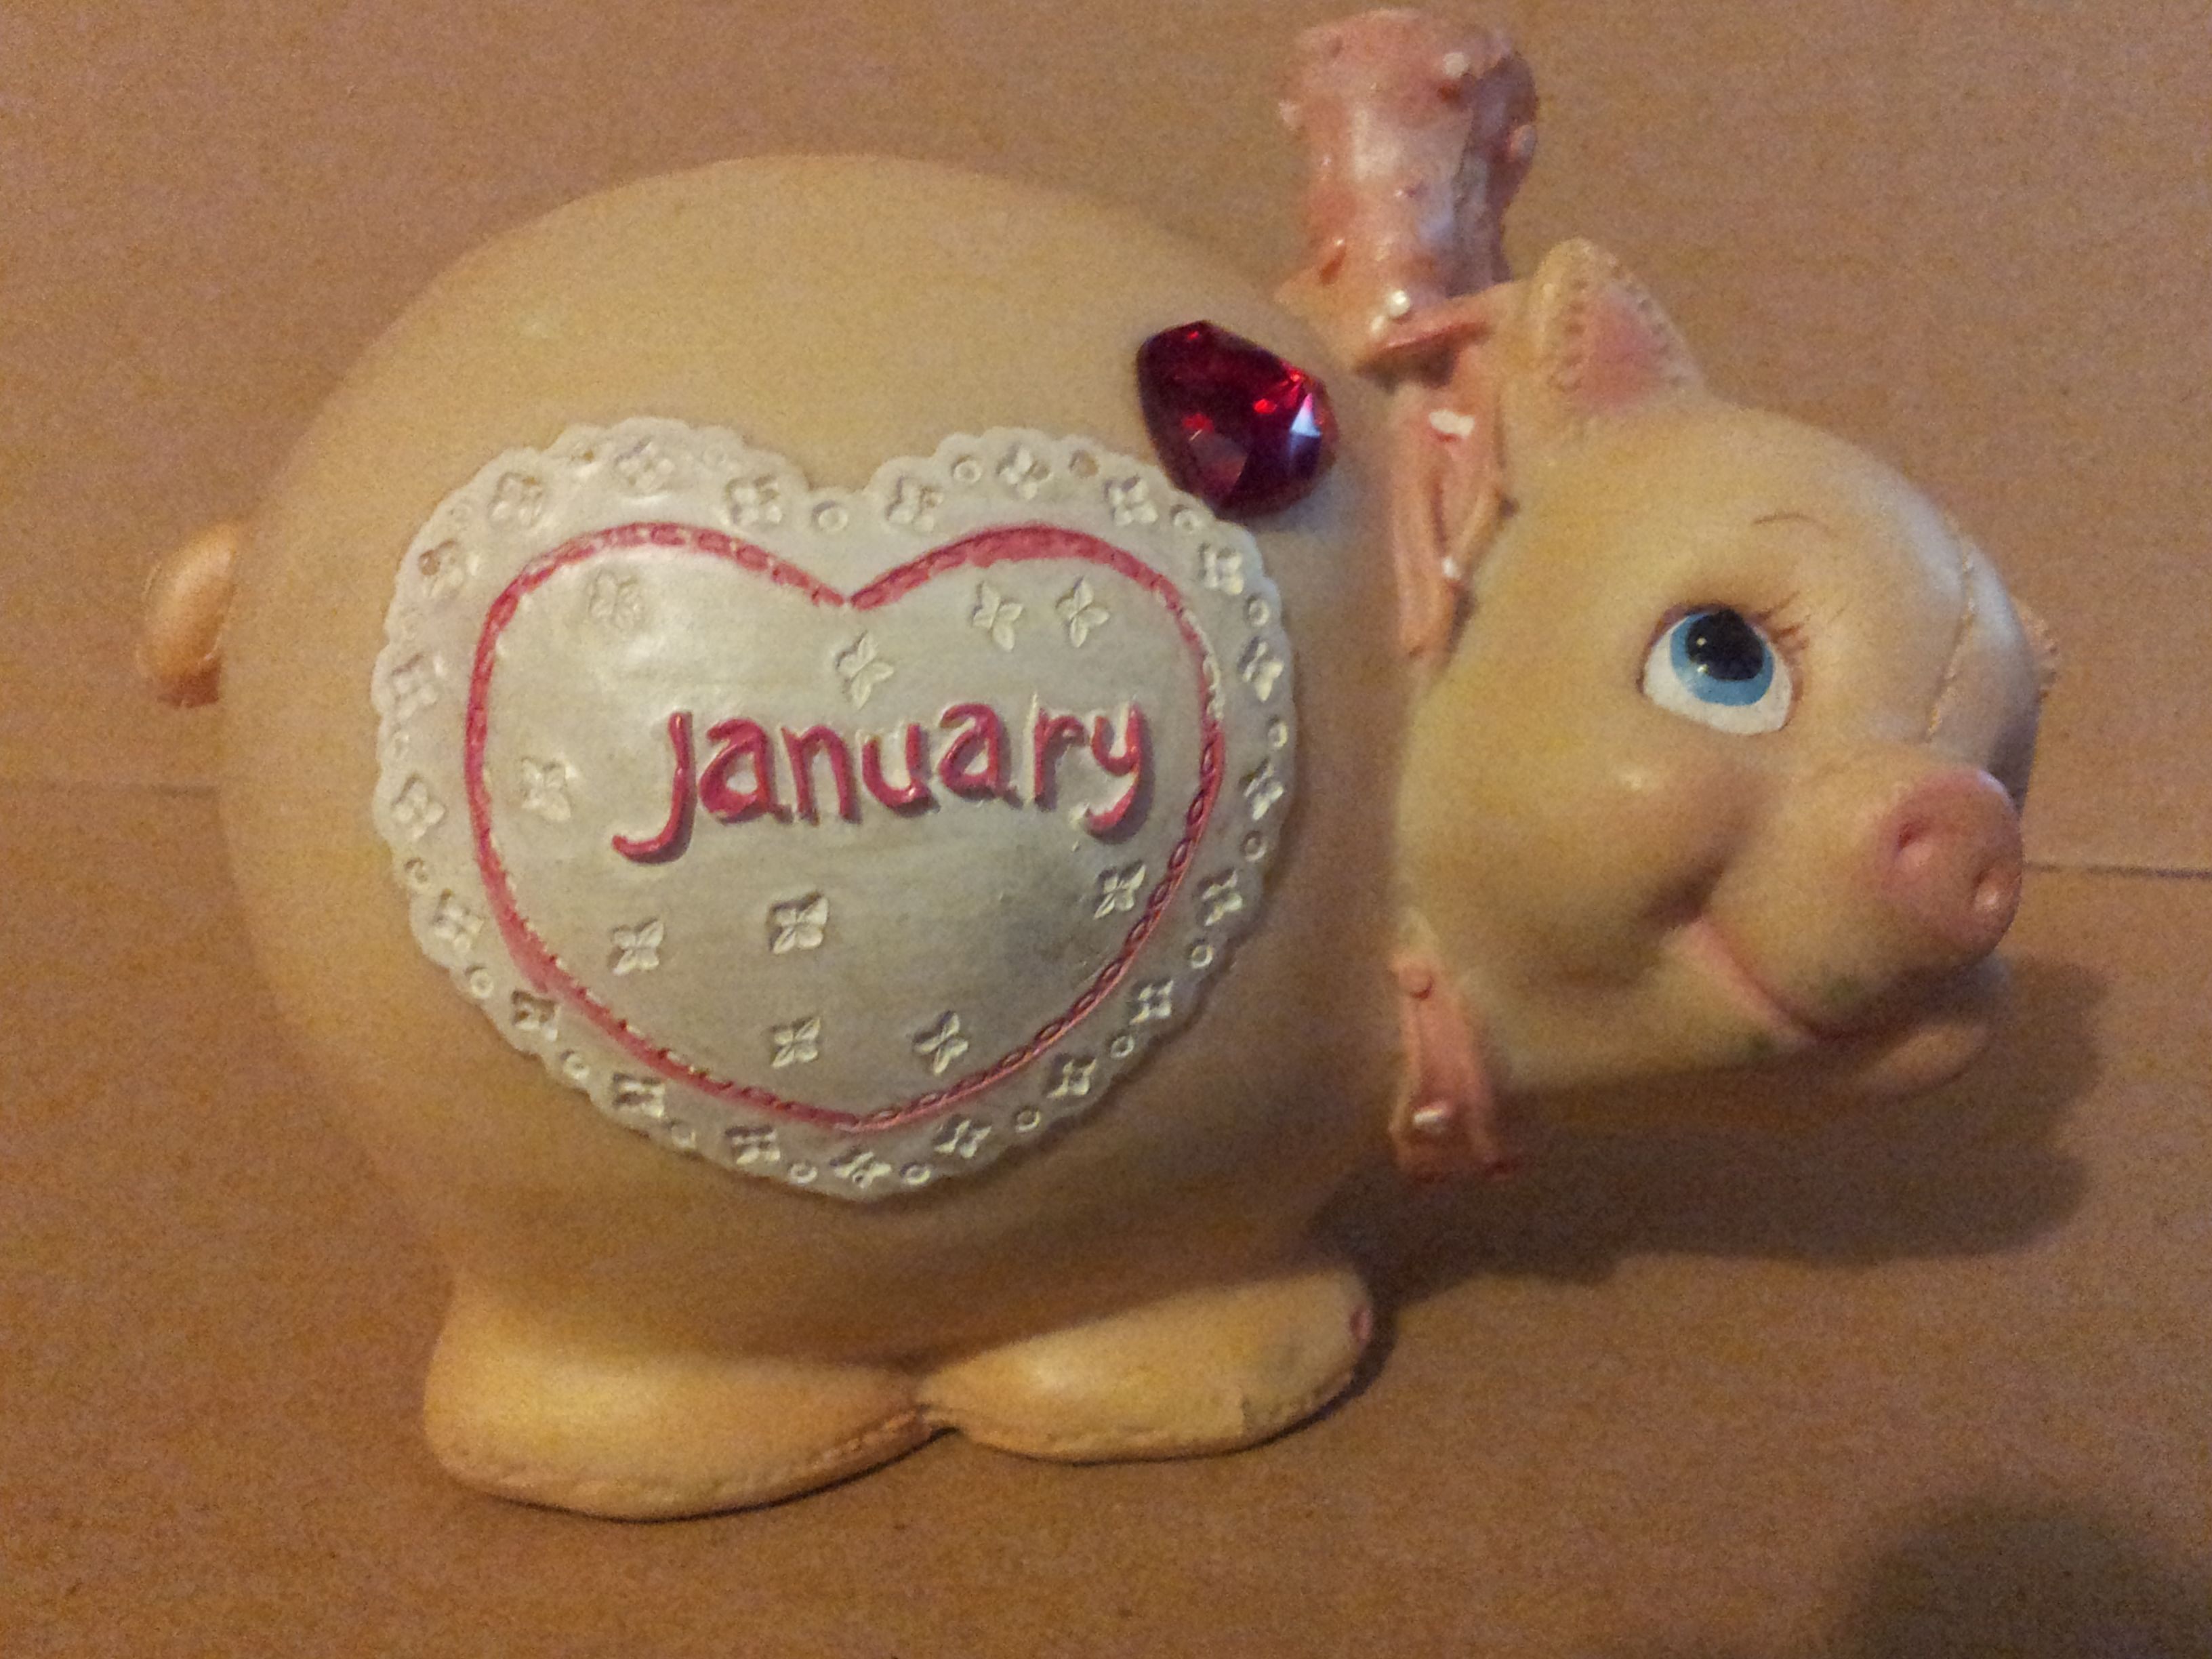 Cute old piggy bank. This is listed on Etsy along with other old piggy banks. My shop name is divagirlsartan stuff.